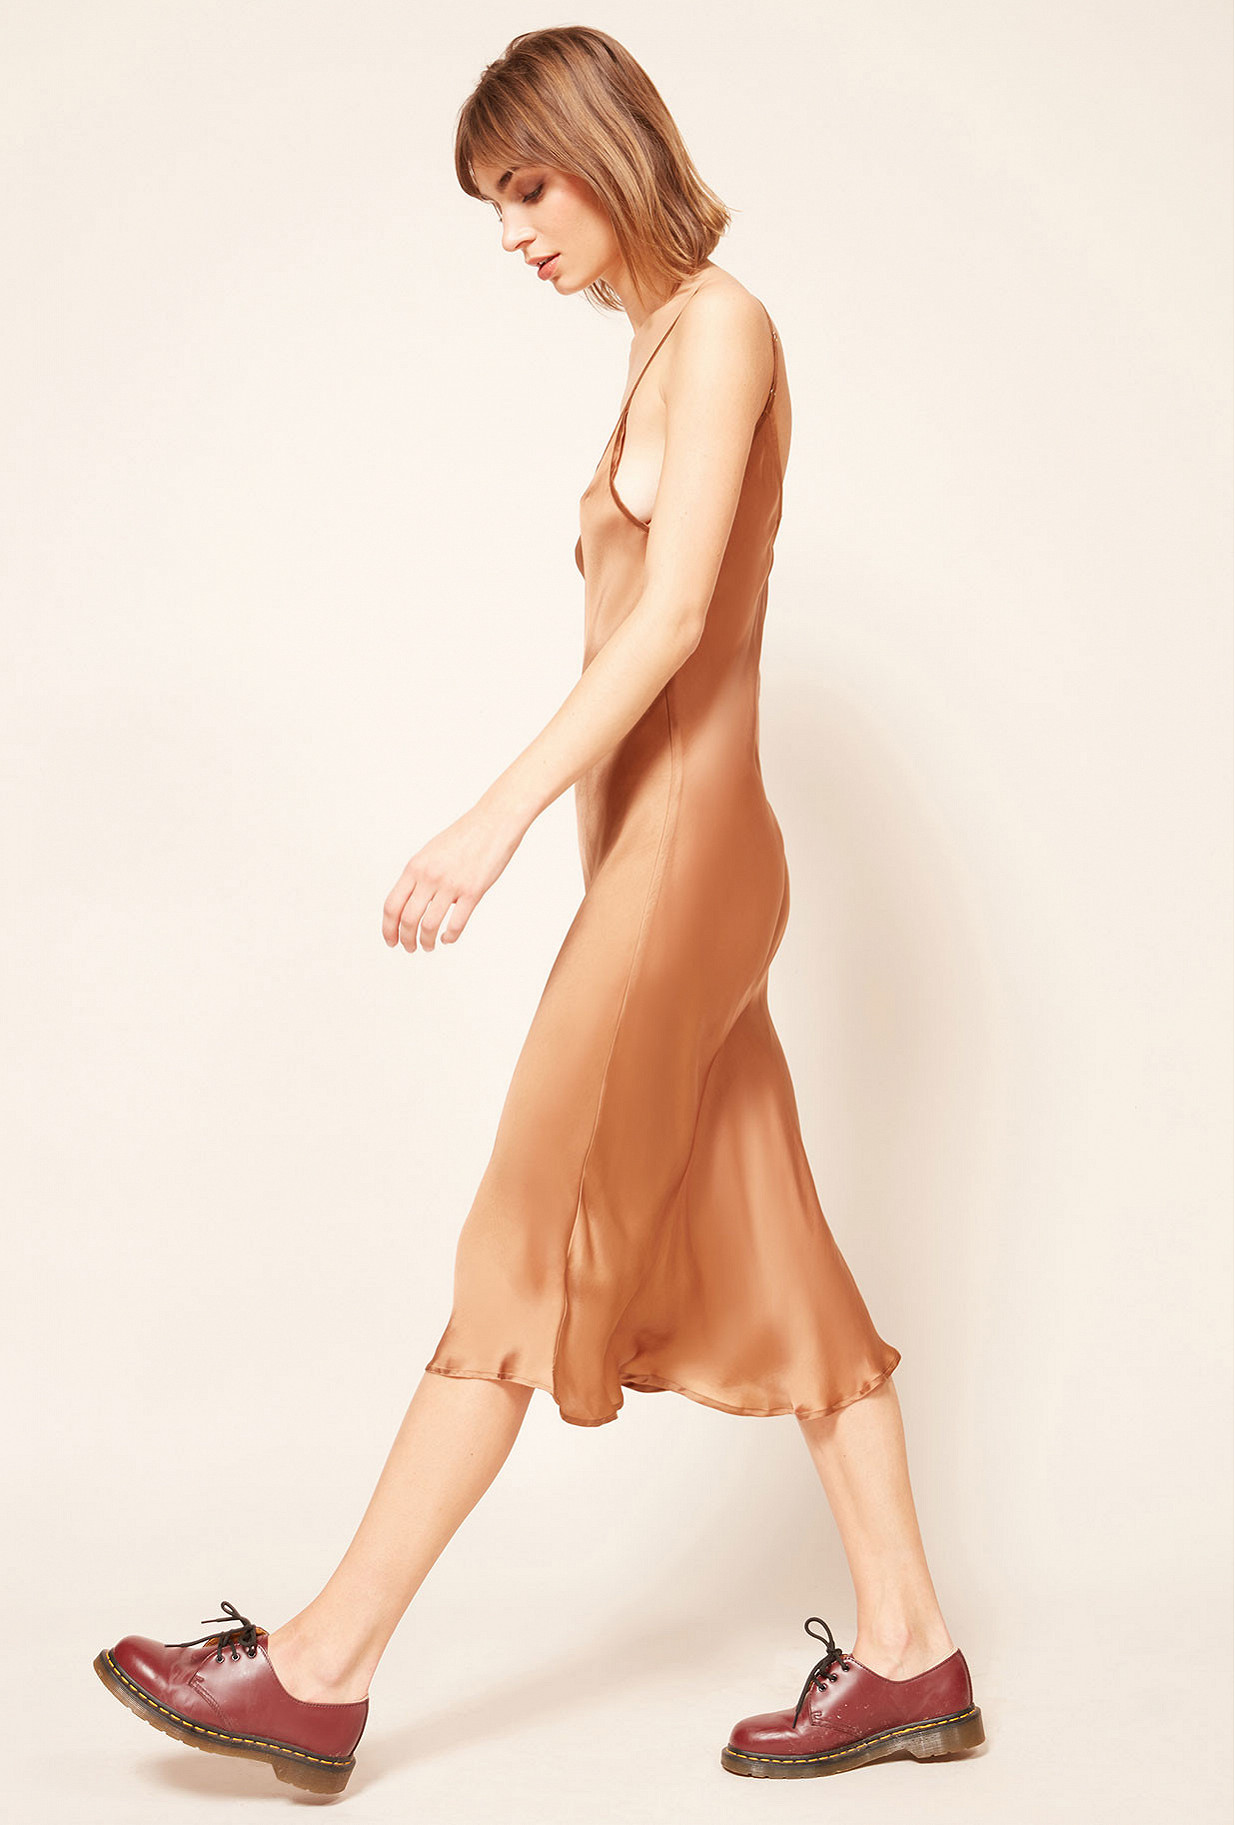 Chestnut  Dress  Lilly Mes demoiselles fashion clothes designer Paris